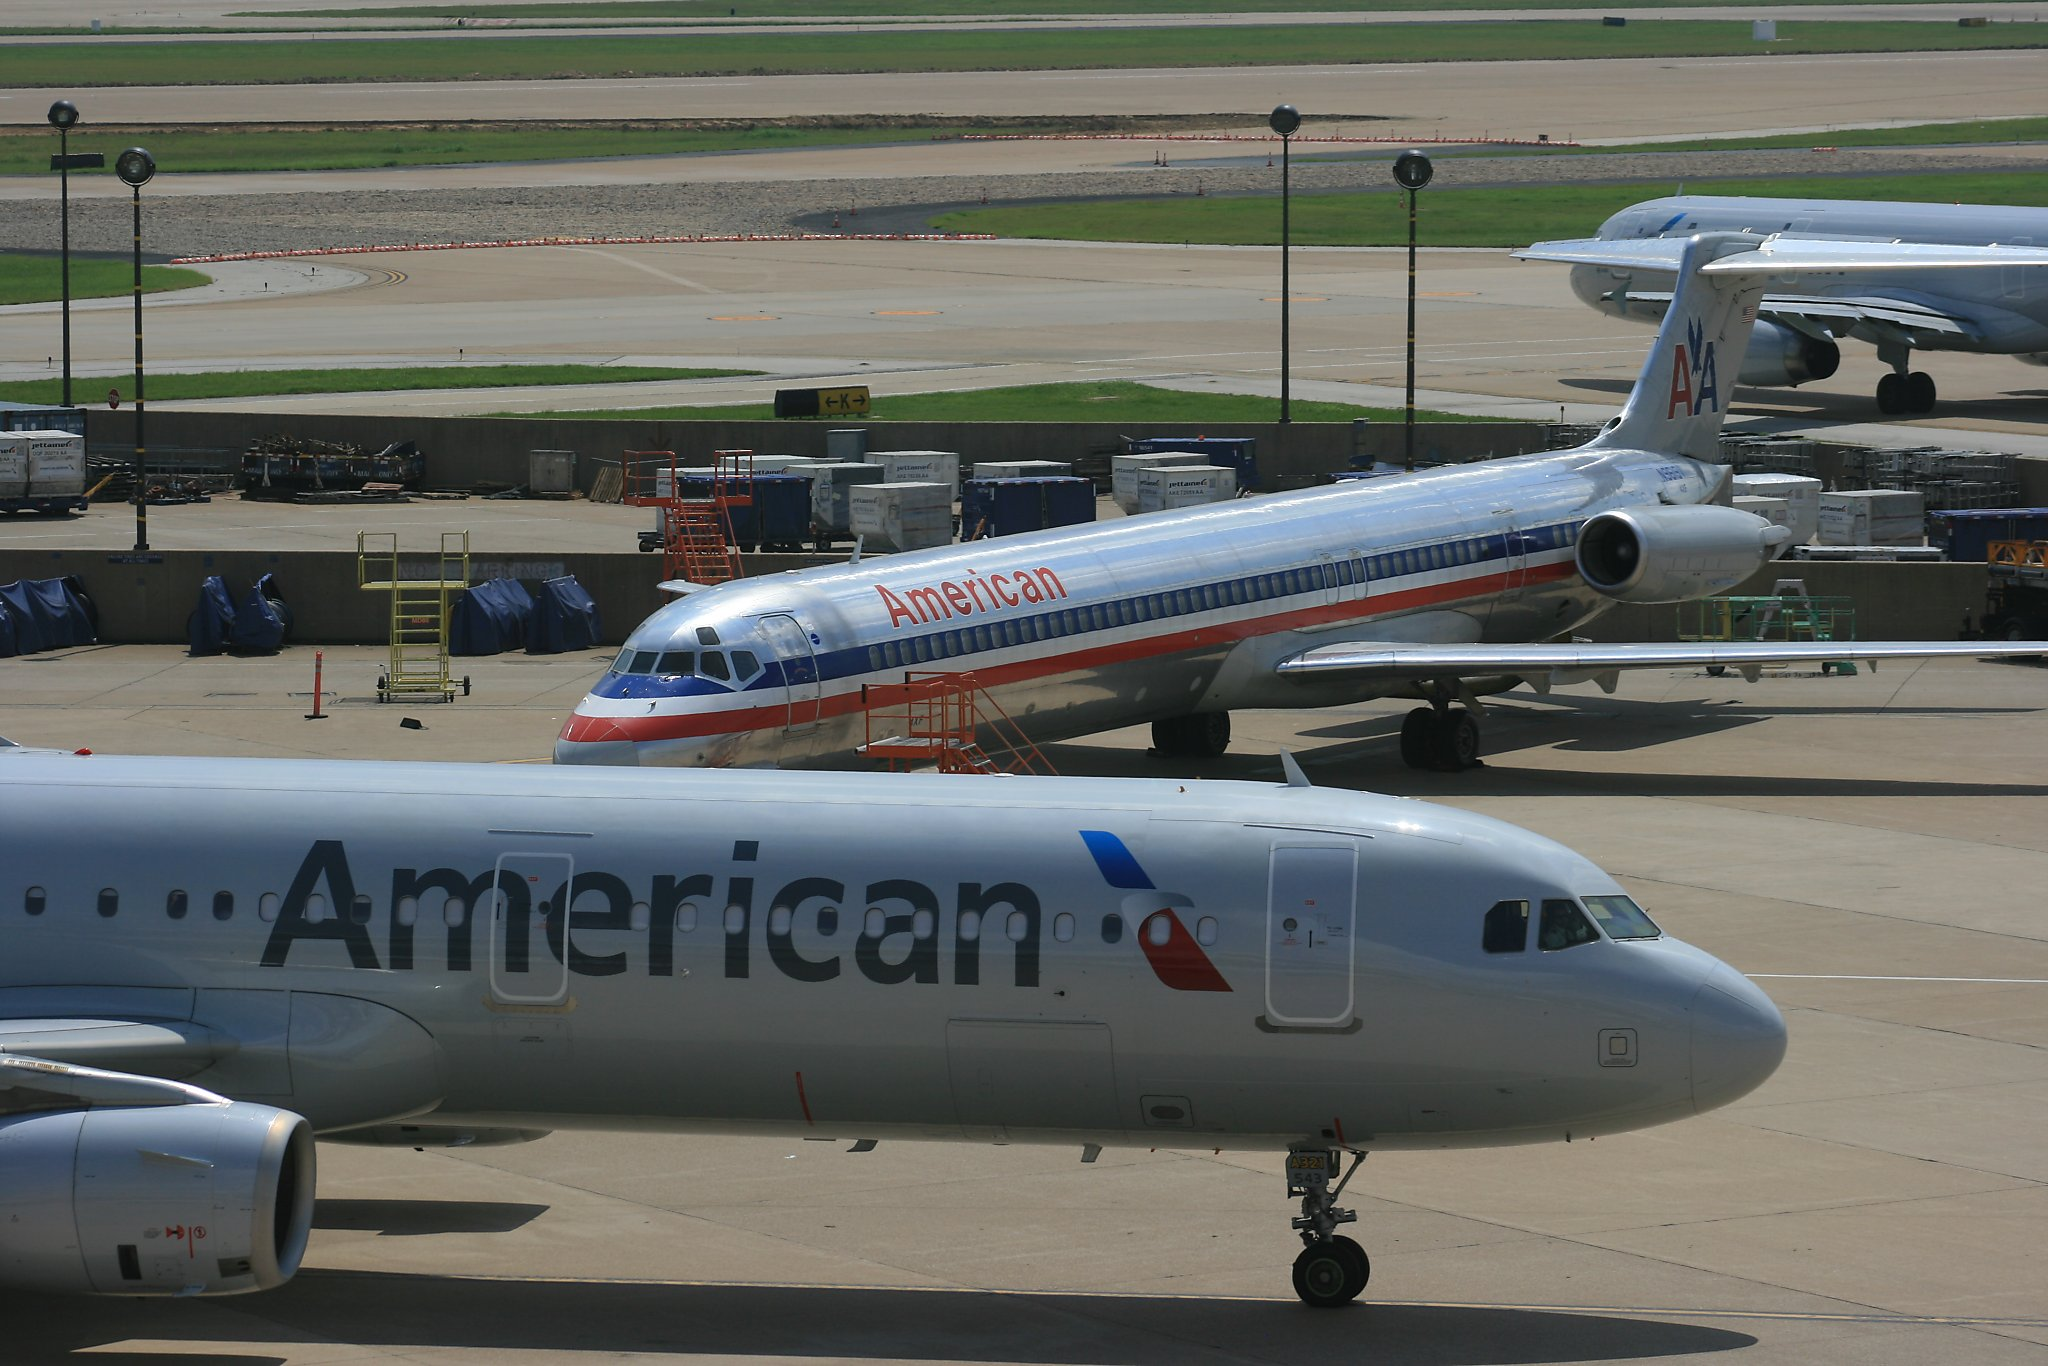 Texas family says they couldnt American Airlines flight after autistic sons meltdown foto